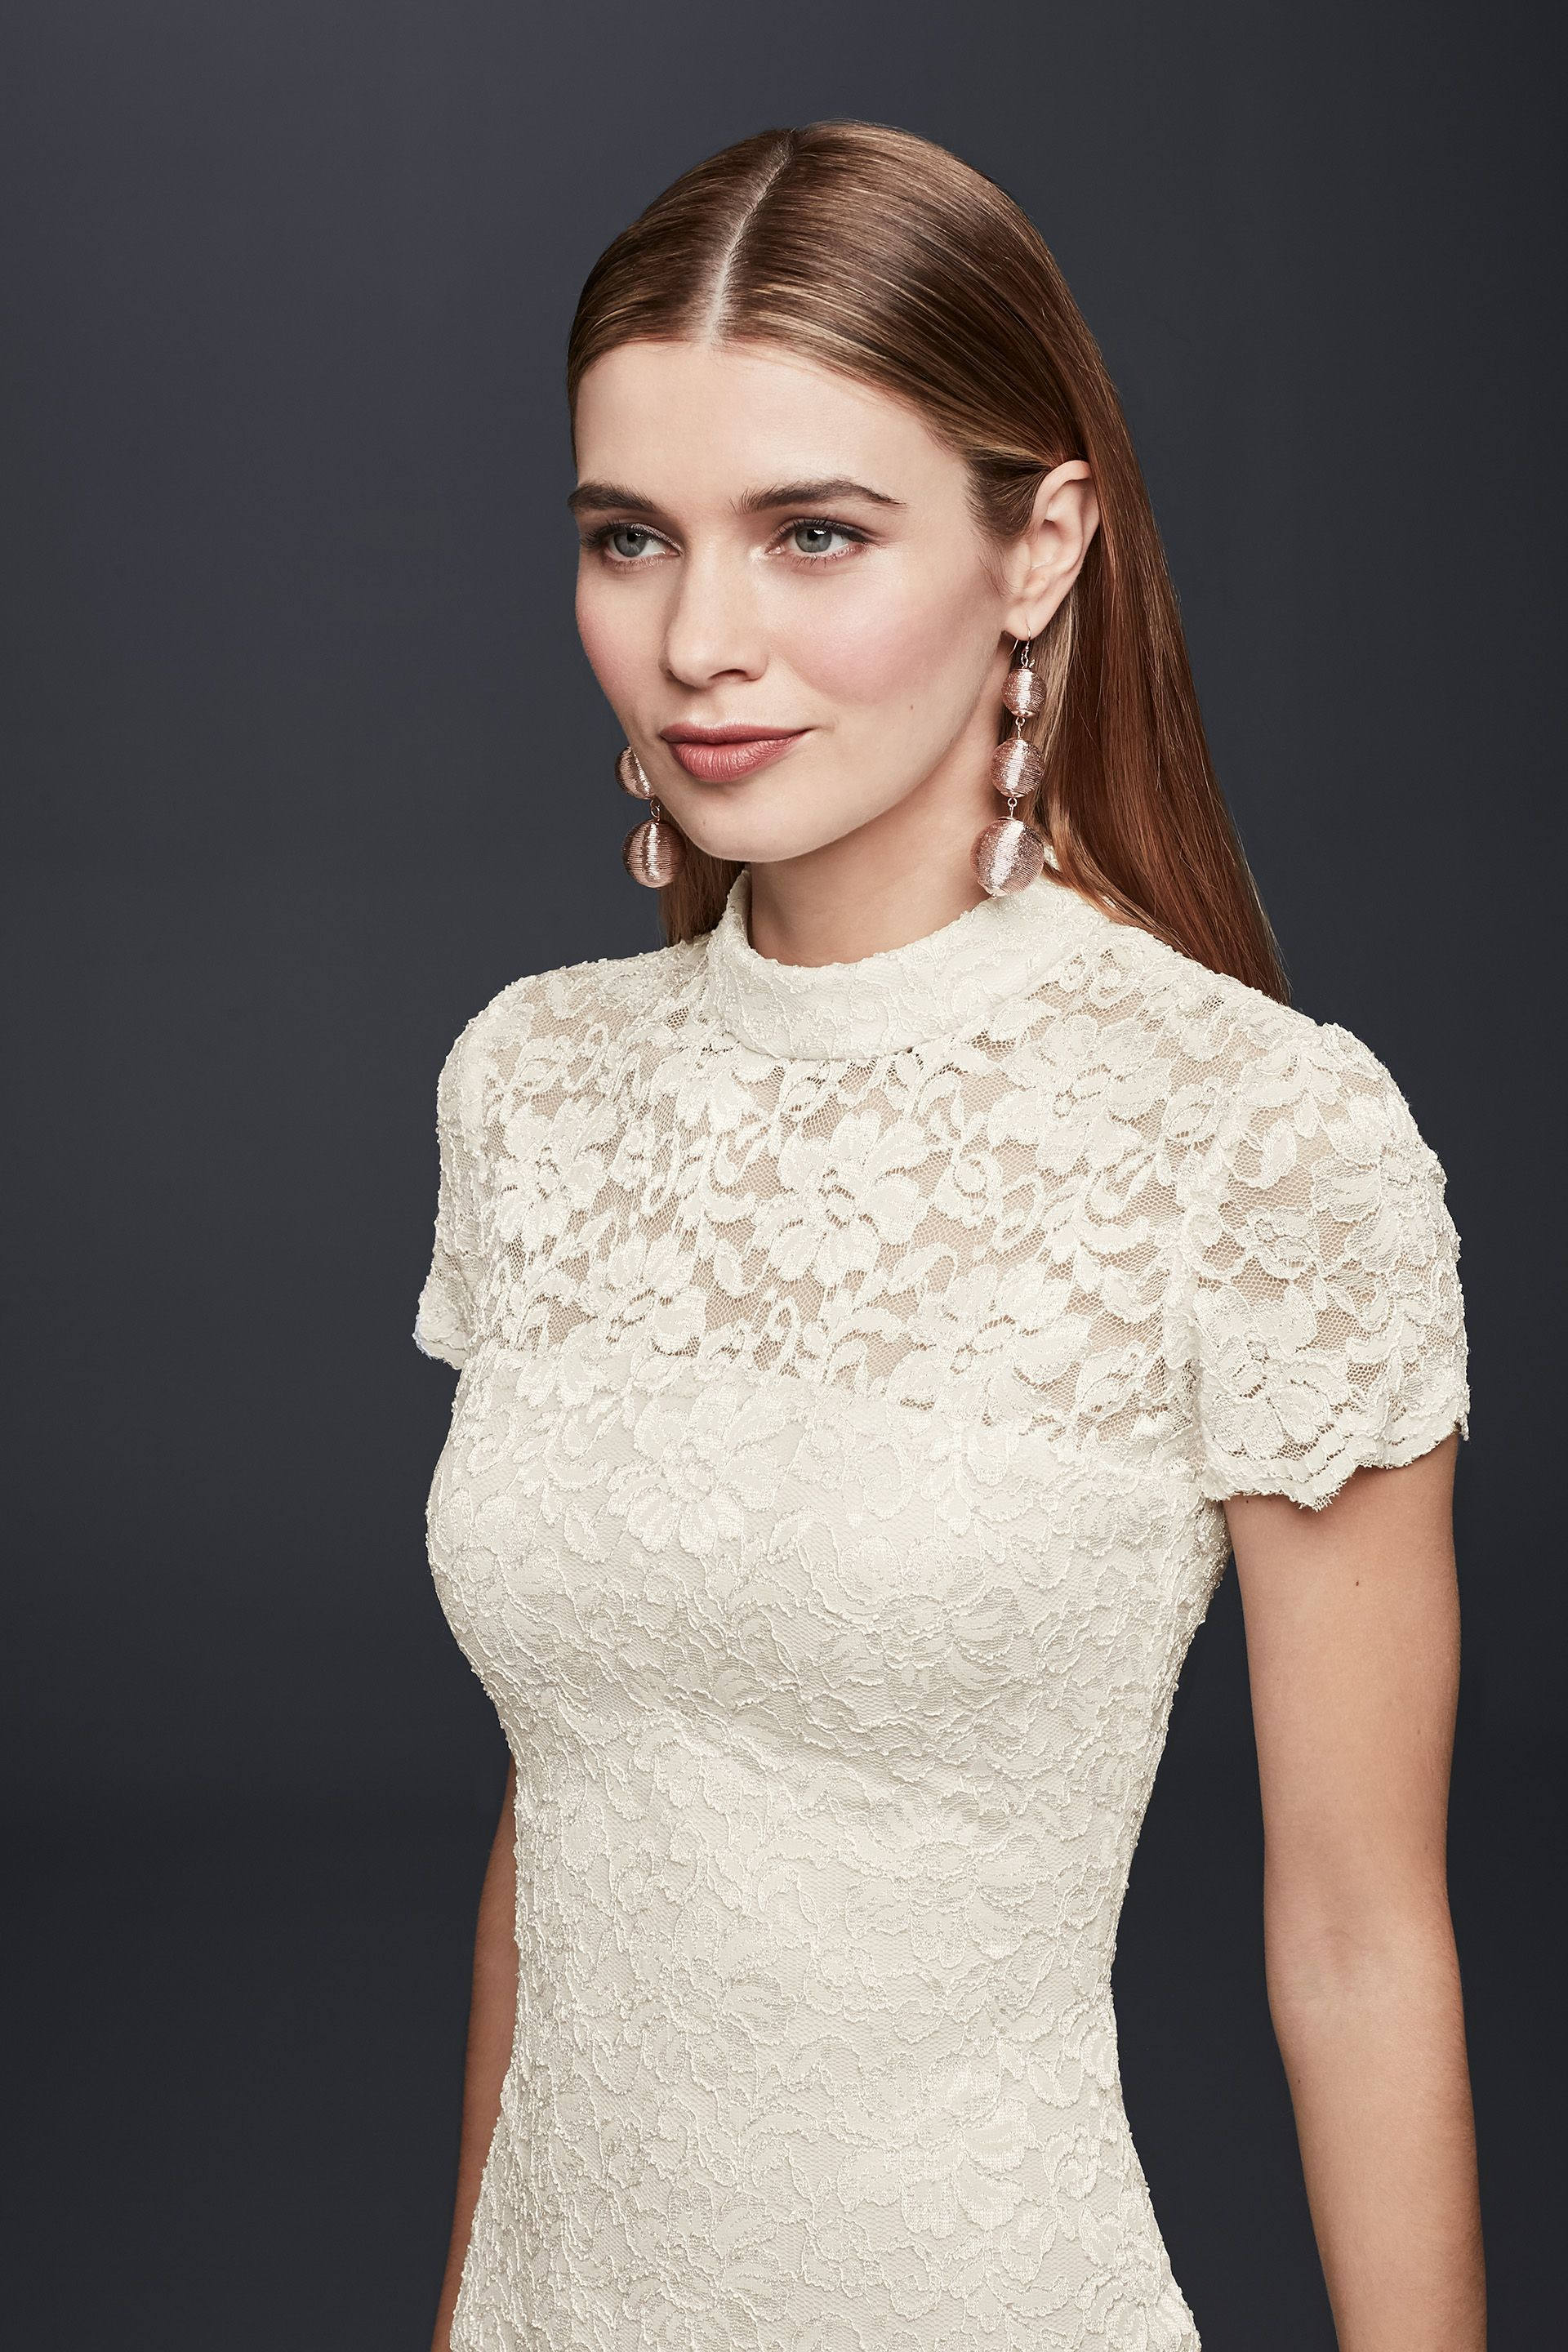 Casual Wedding Dresses Under 300 You Won't Believe (With